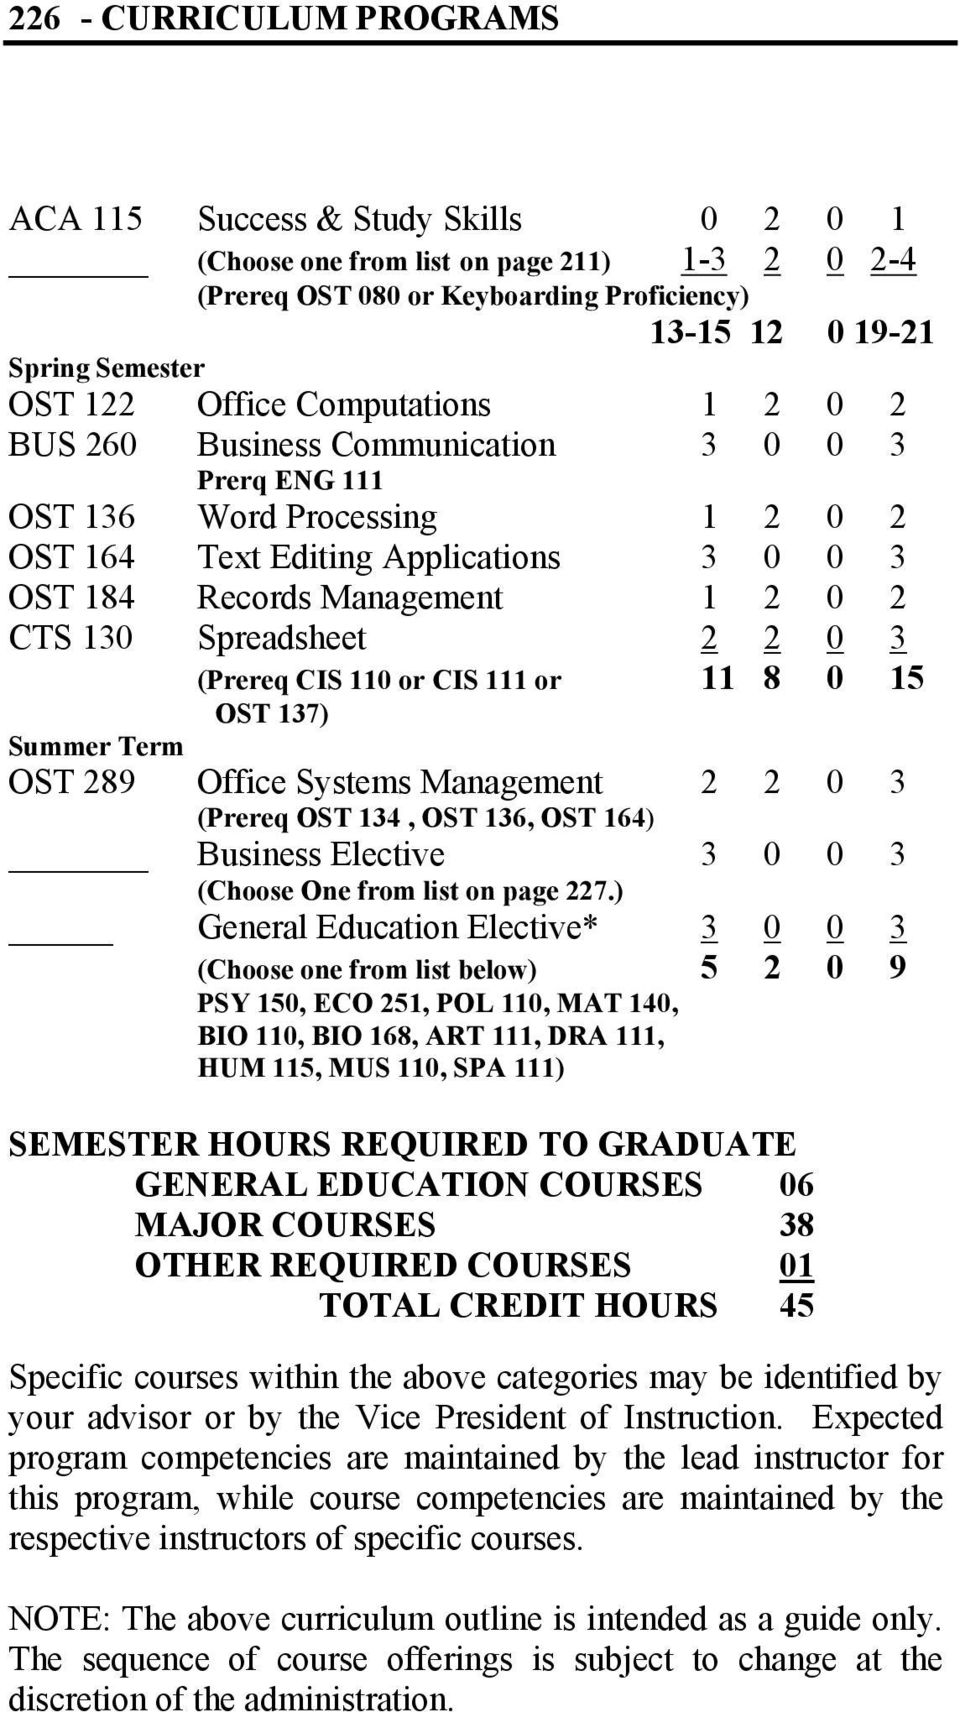 Spreadsheet 2 2 0 3 (Prereq CIS 110 or CIS 111 or 11 8 0 15 OST 137) Summer Term OST 289 Office Systems Management (Prereq OST 134, OST 136, OST 164) 2 2 0 3 Business Elective (Choose One from list